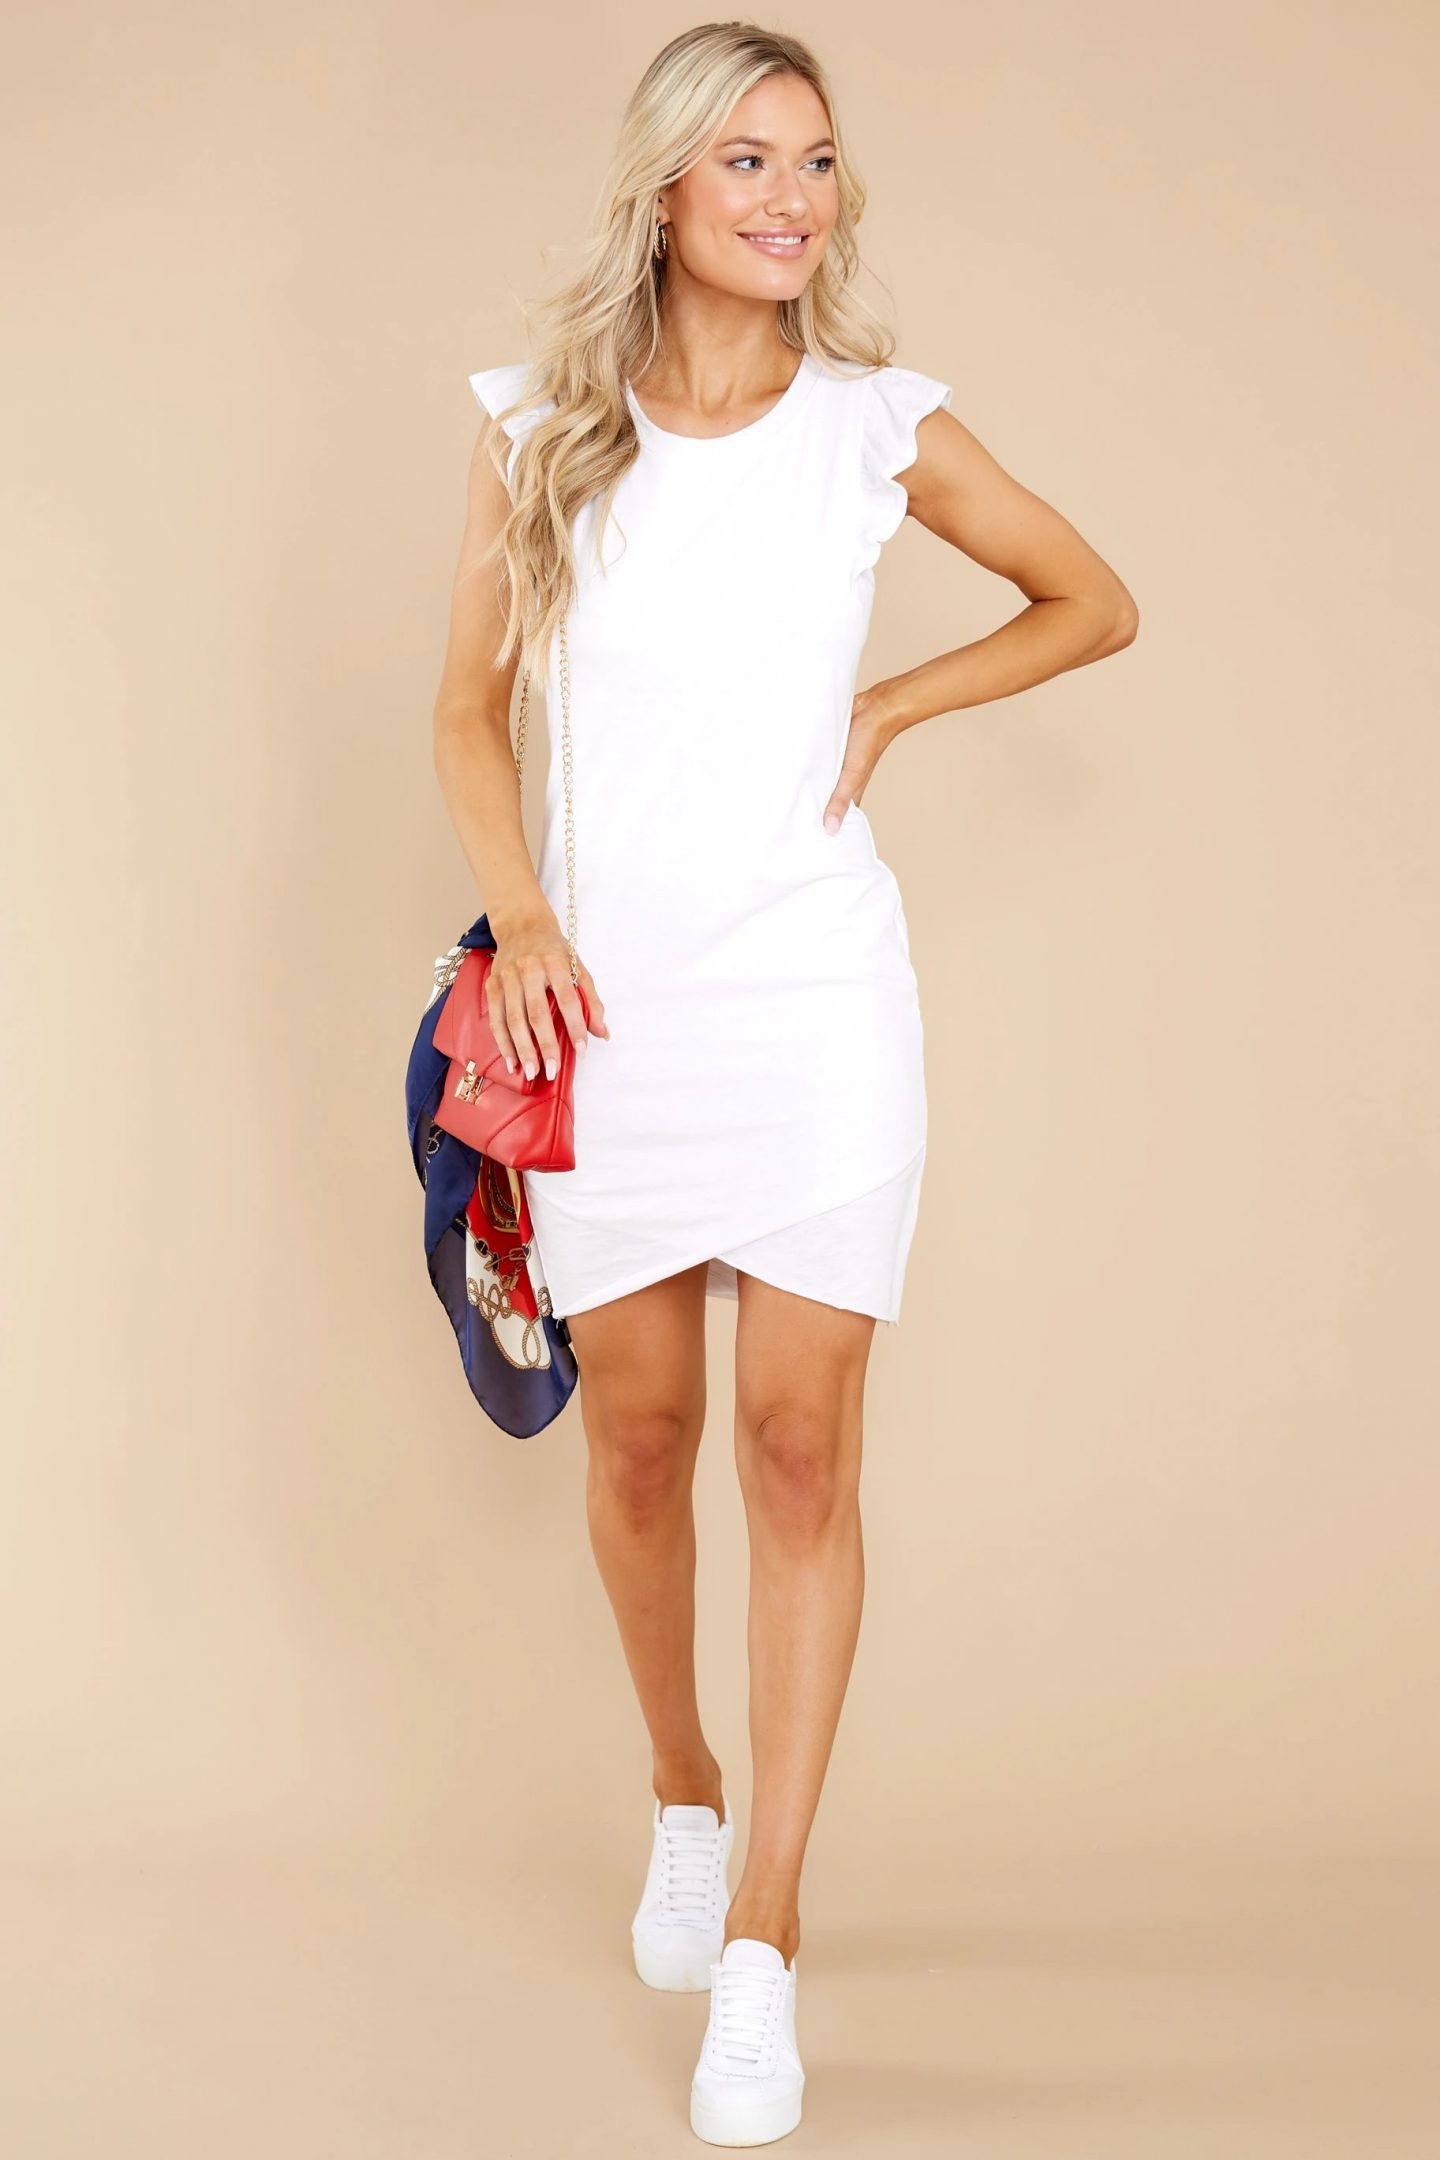 Casual white dress for graduation